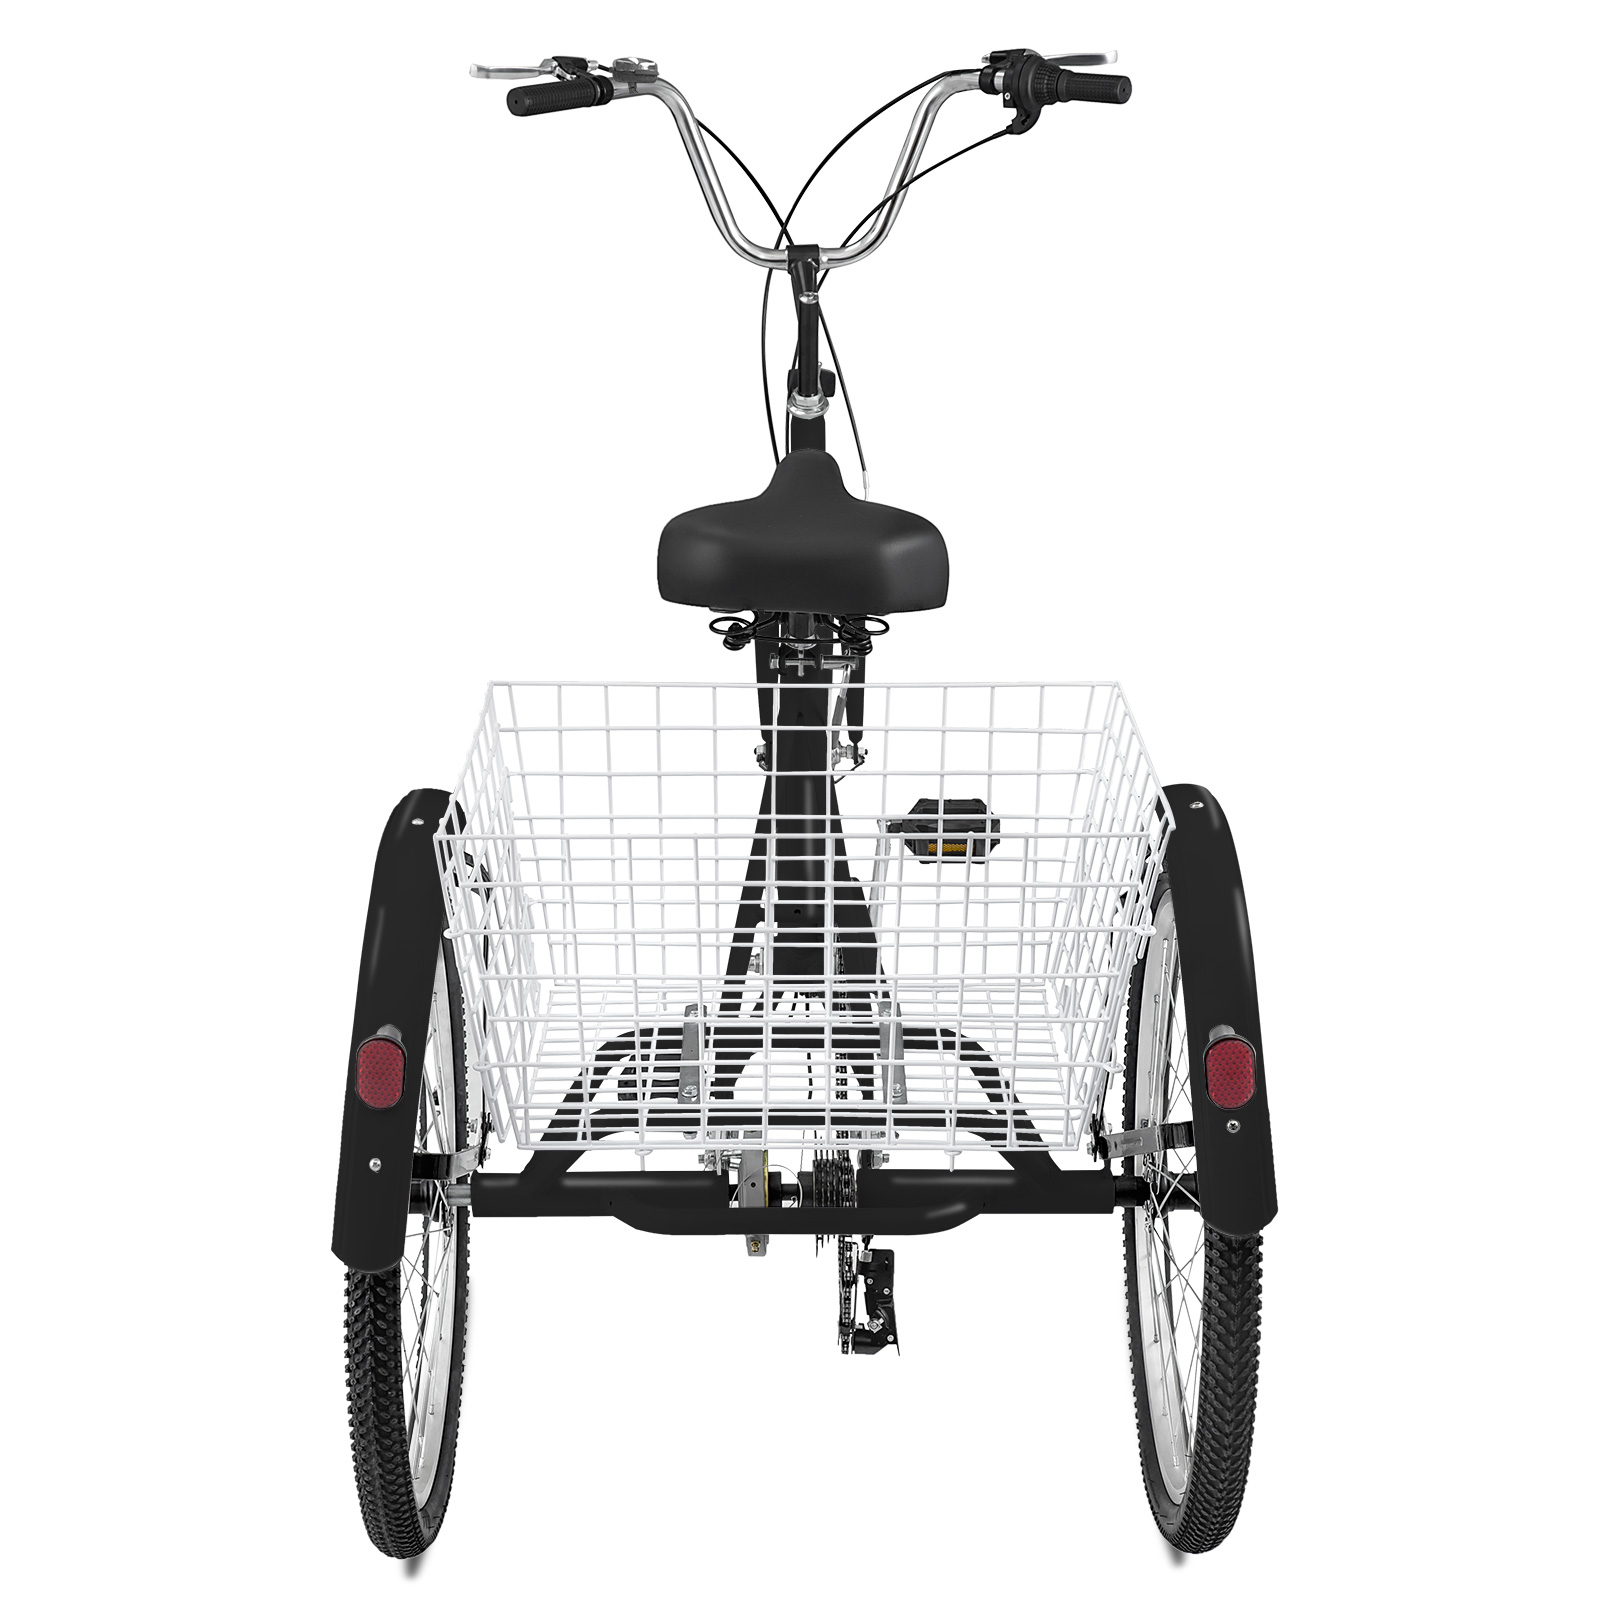 20-24-26-034-Adult-Tricycle-1-7-Speed-3-Wheel-Large-Basket-For-Shopping-Optional thumbnail 372